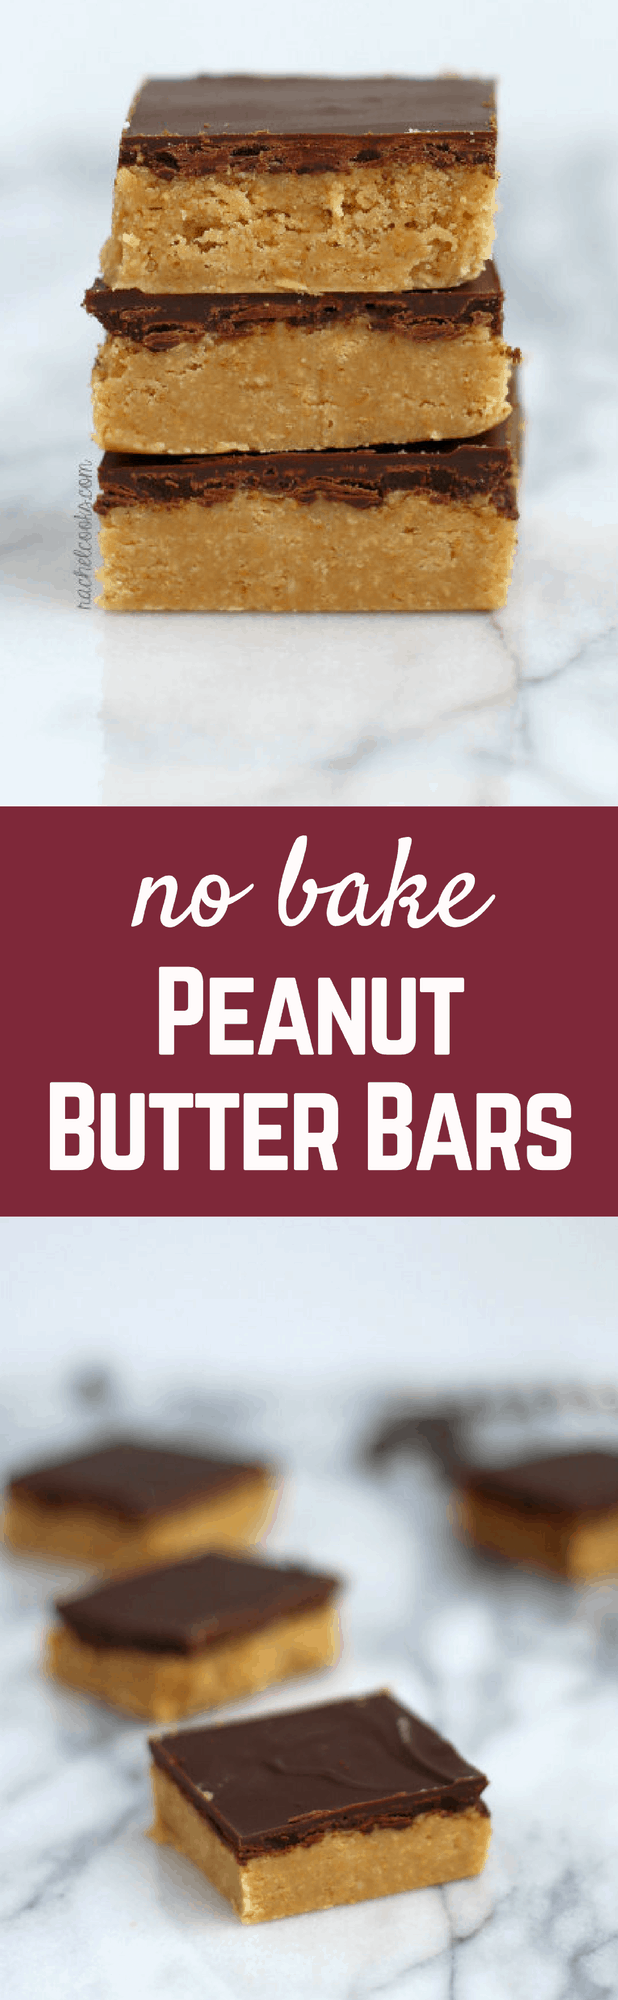 No Bake Peanut Butter Bars {taste just like Reese's!} | RachelCooks.com